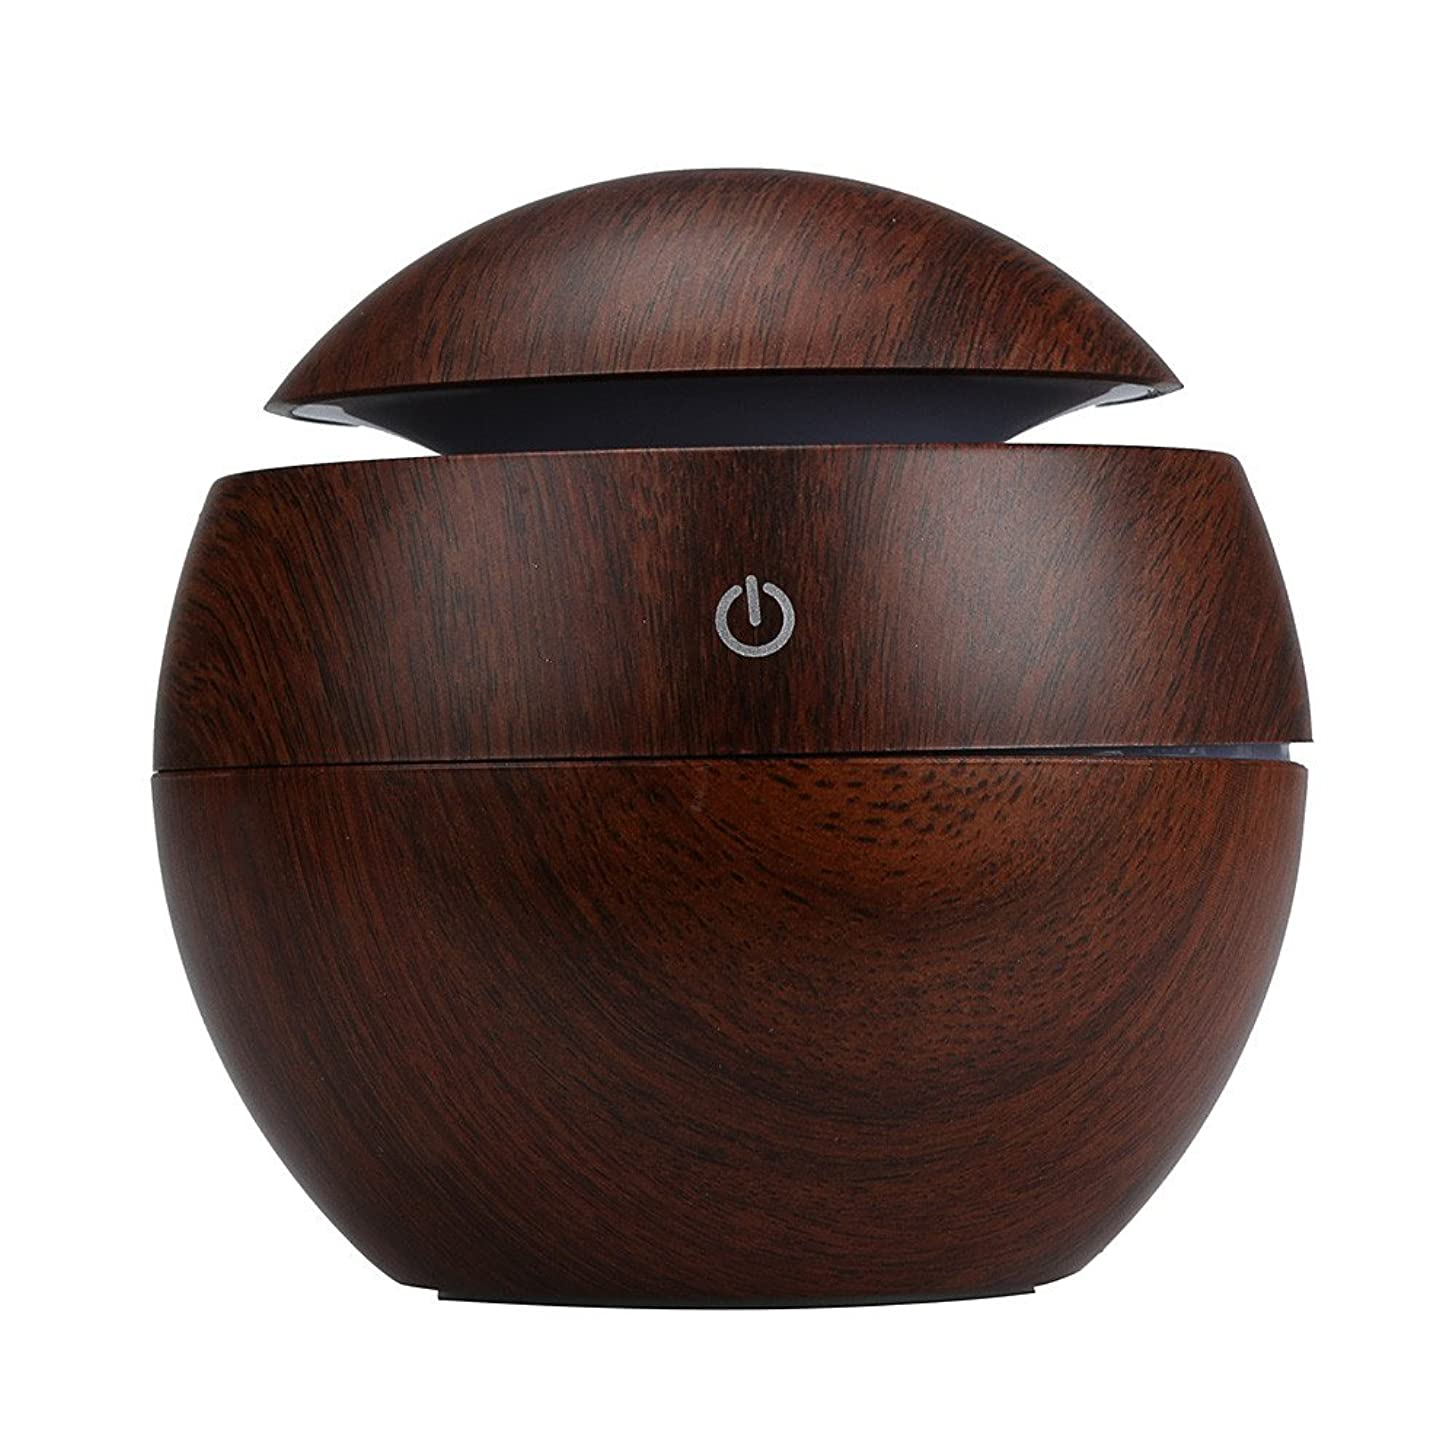 Aroma Humidifier Large,LED Aroma Ultrasonic Humidifier USB Essential Oil Diffuser Air Purifier,3d mirror wall stickers stars,Brown,Free Size